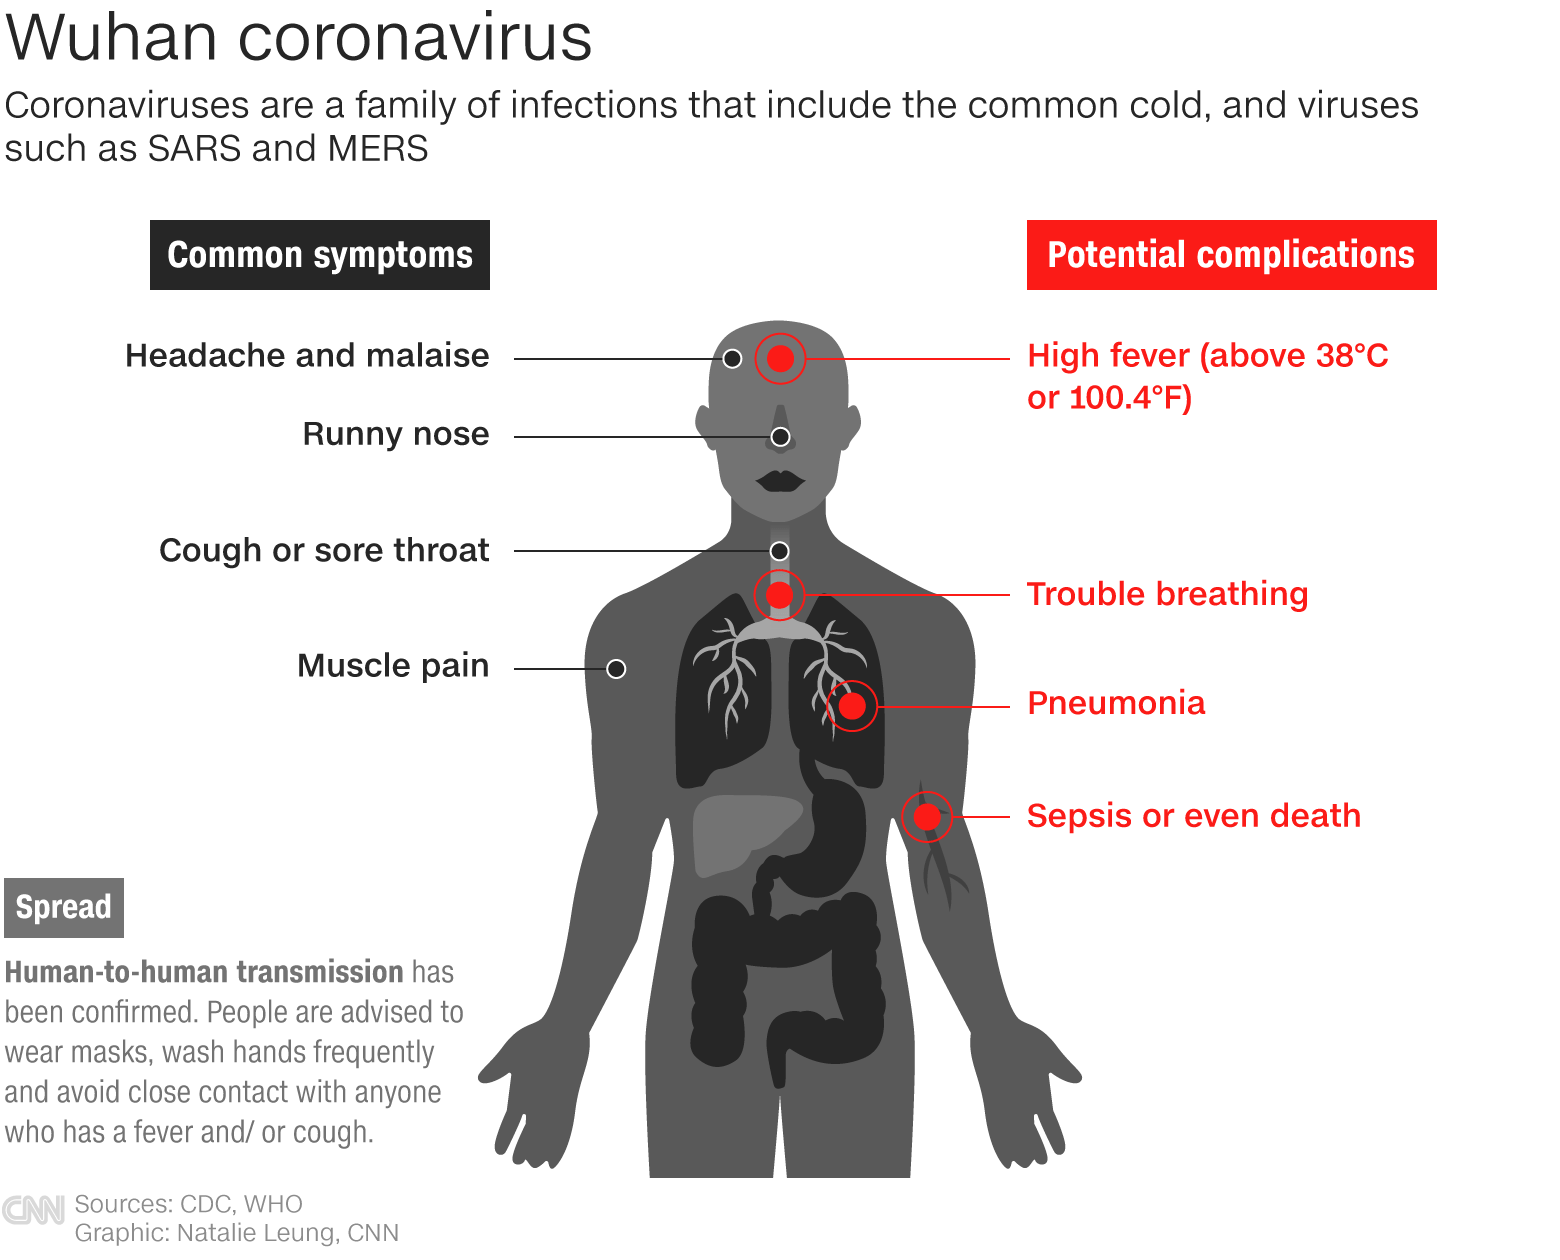 How the Wuhan coronavirus affects the body